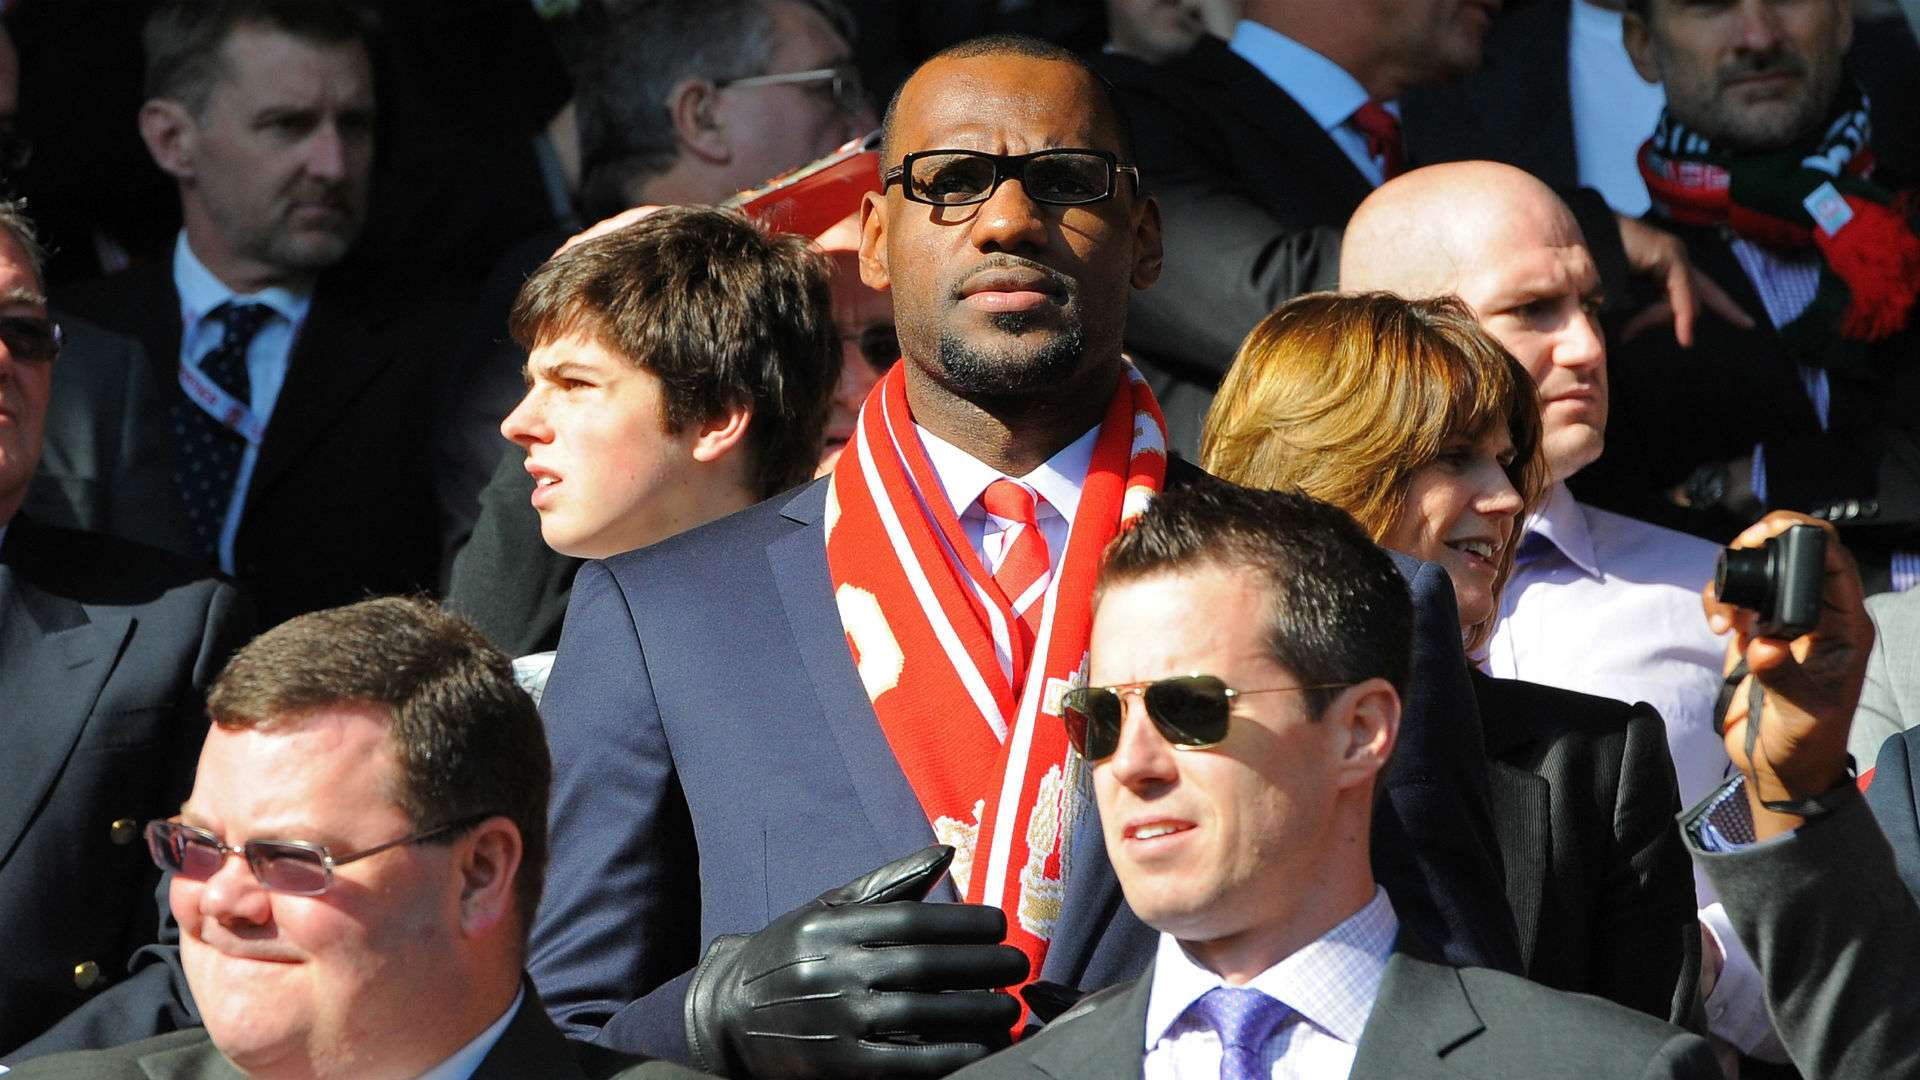 LeBron James and Liverpool: The LA Lakers star's Premier